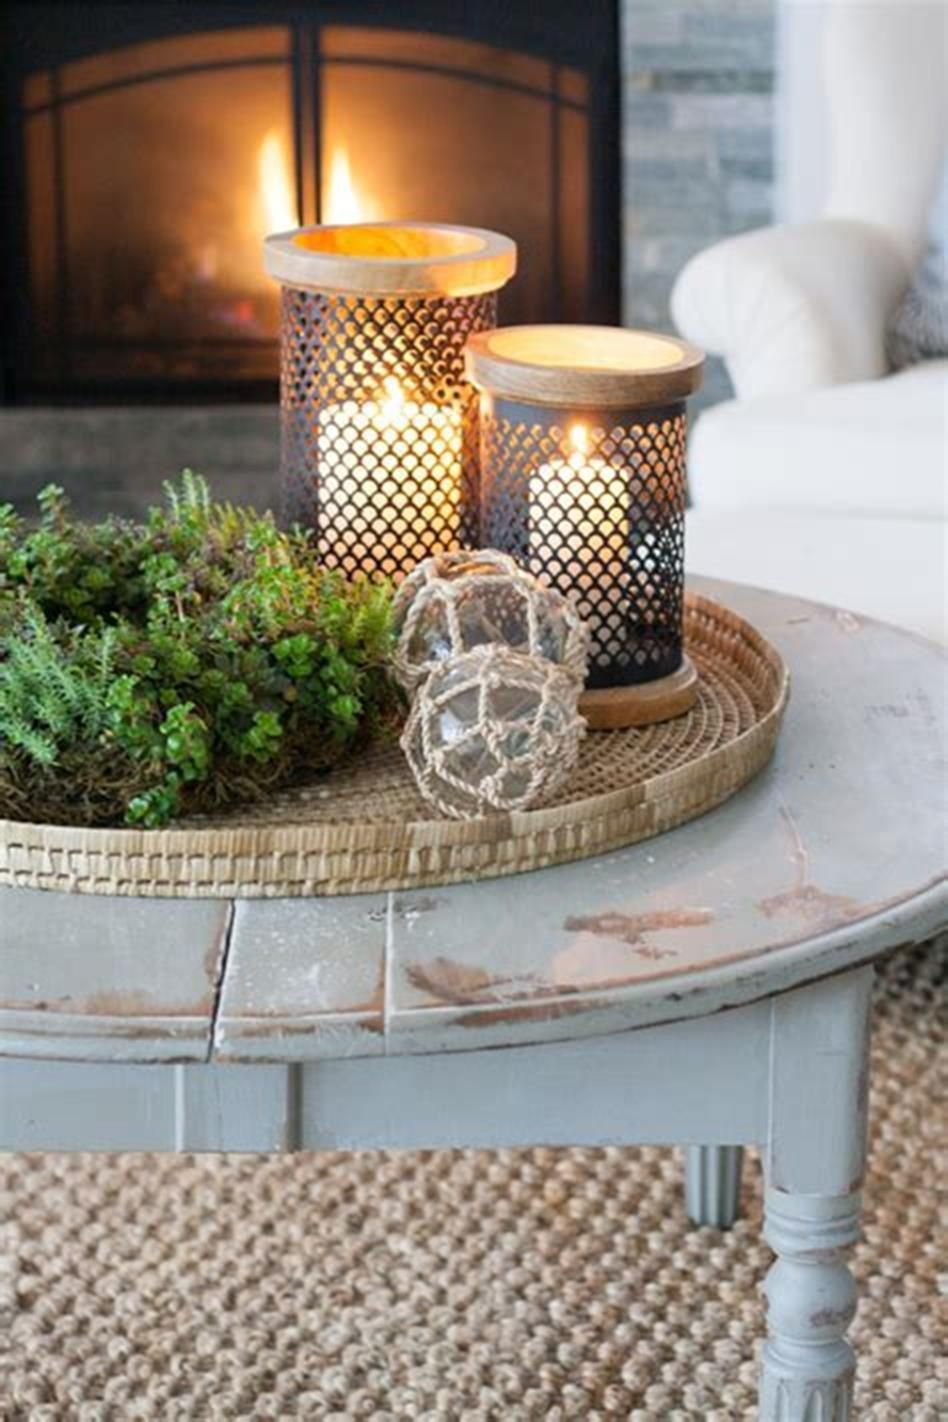 46 Awesome Coffee Table Tray Decor Ideas 34 Decorating Coffee